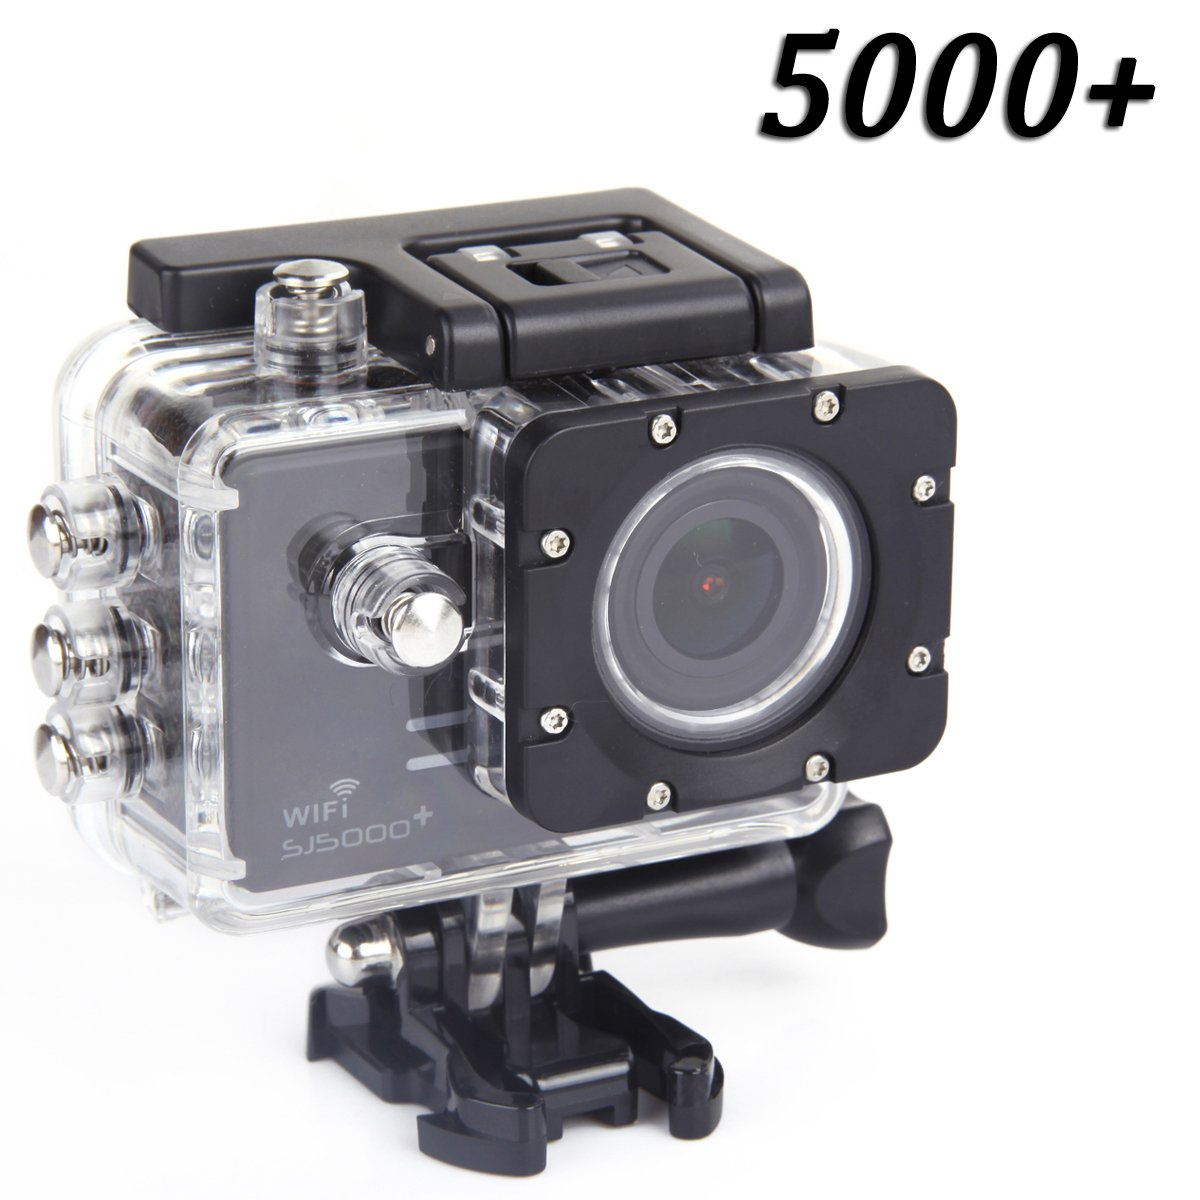 Original Sj5000 Plus Wifi Sports Action Camera Sjcam Sj5000+ Water Resistant Helmet Head Video Camcorder (Black)